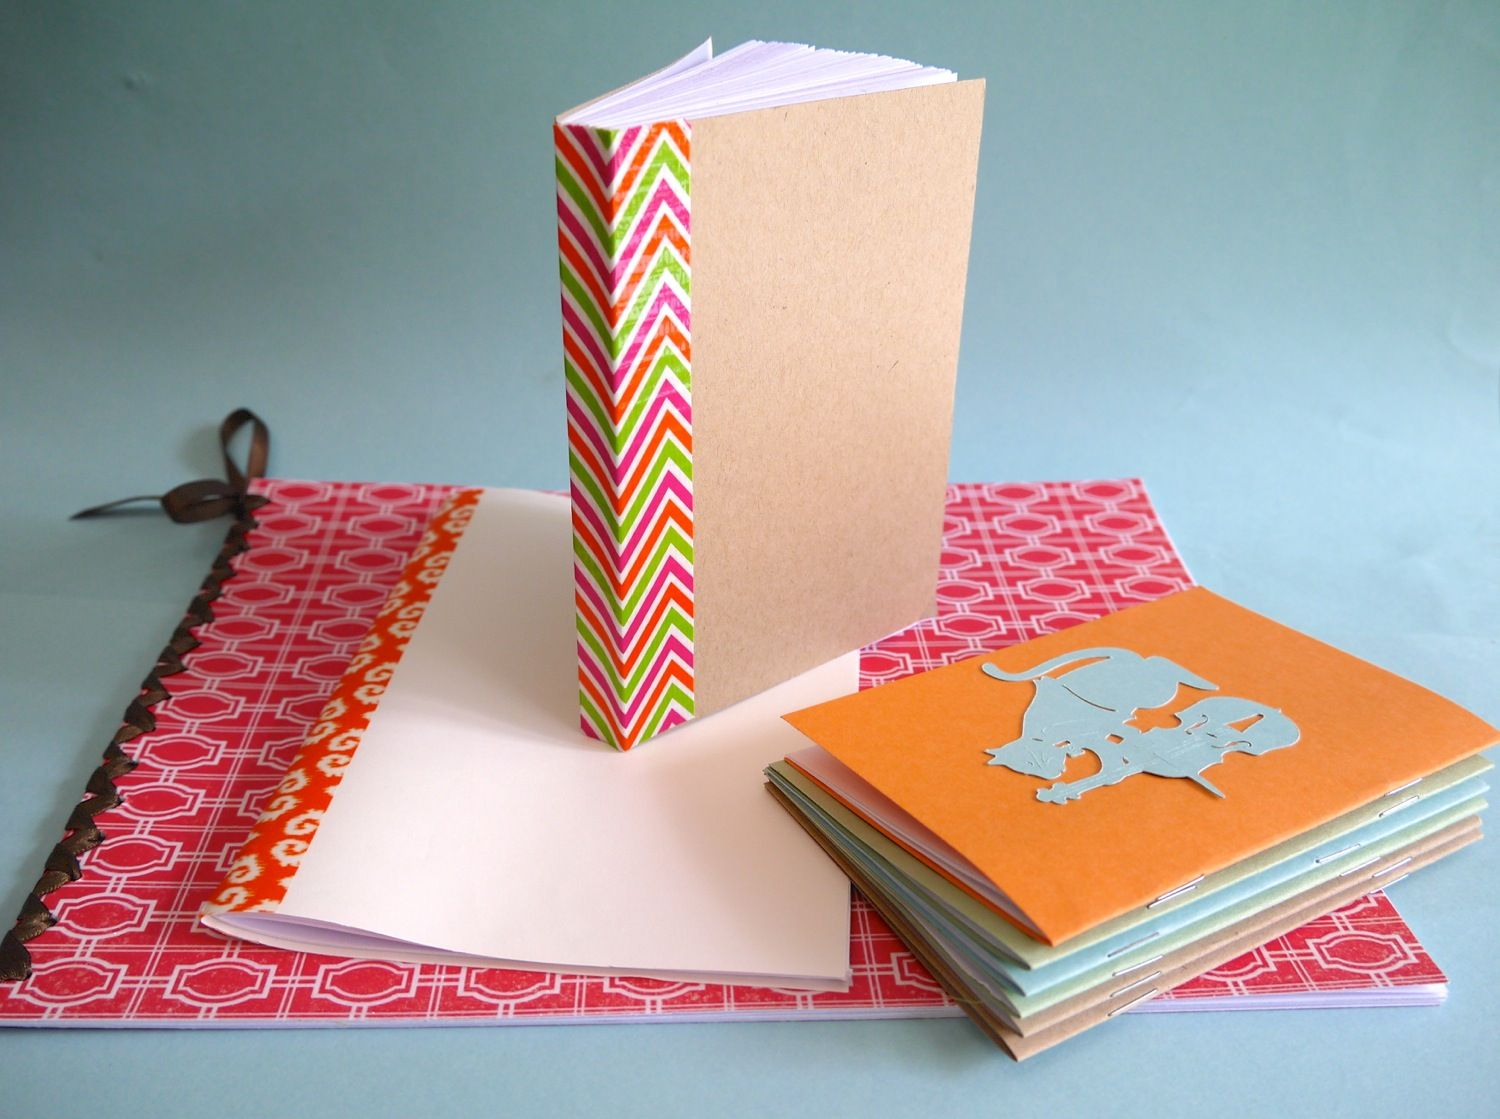 How to make a homemade scrapbook with construction paper - Ways To Bind A Homemade Book